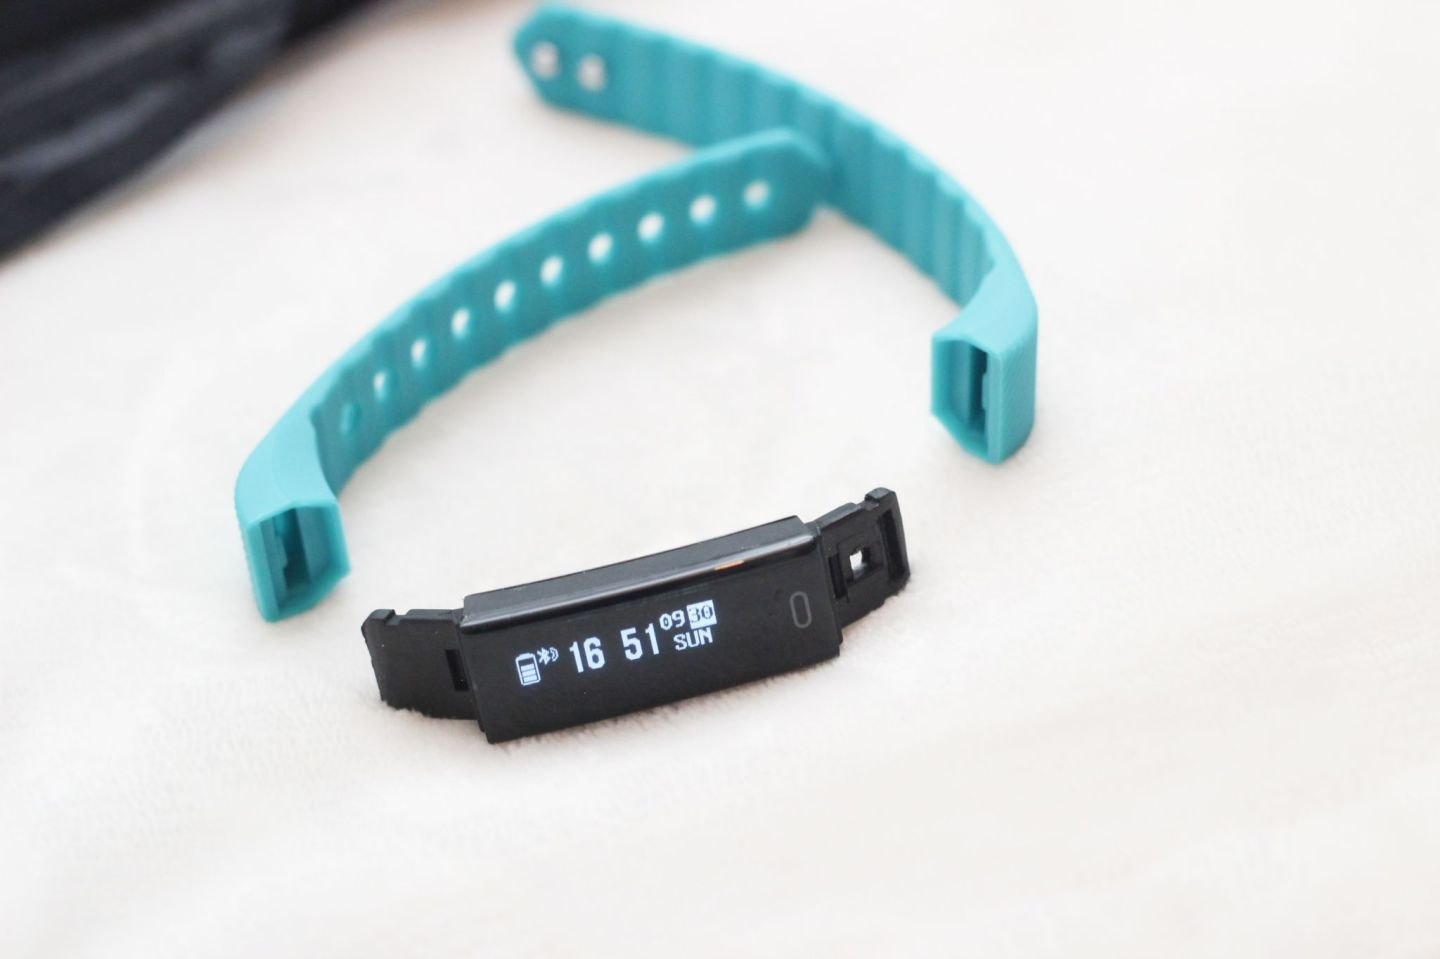 FourFit Fit Band Charger